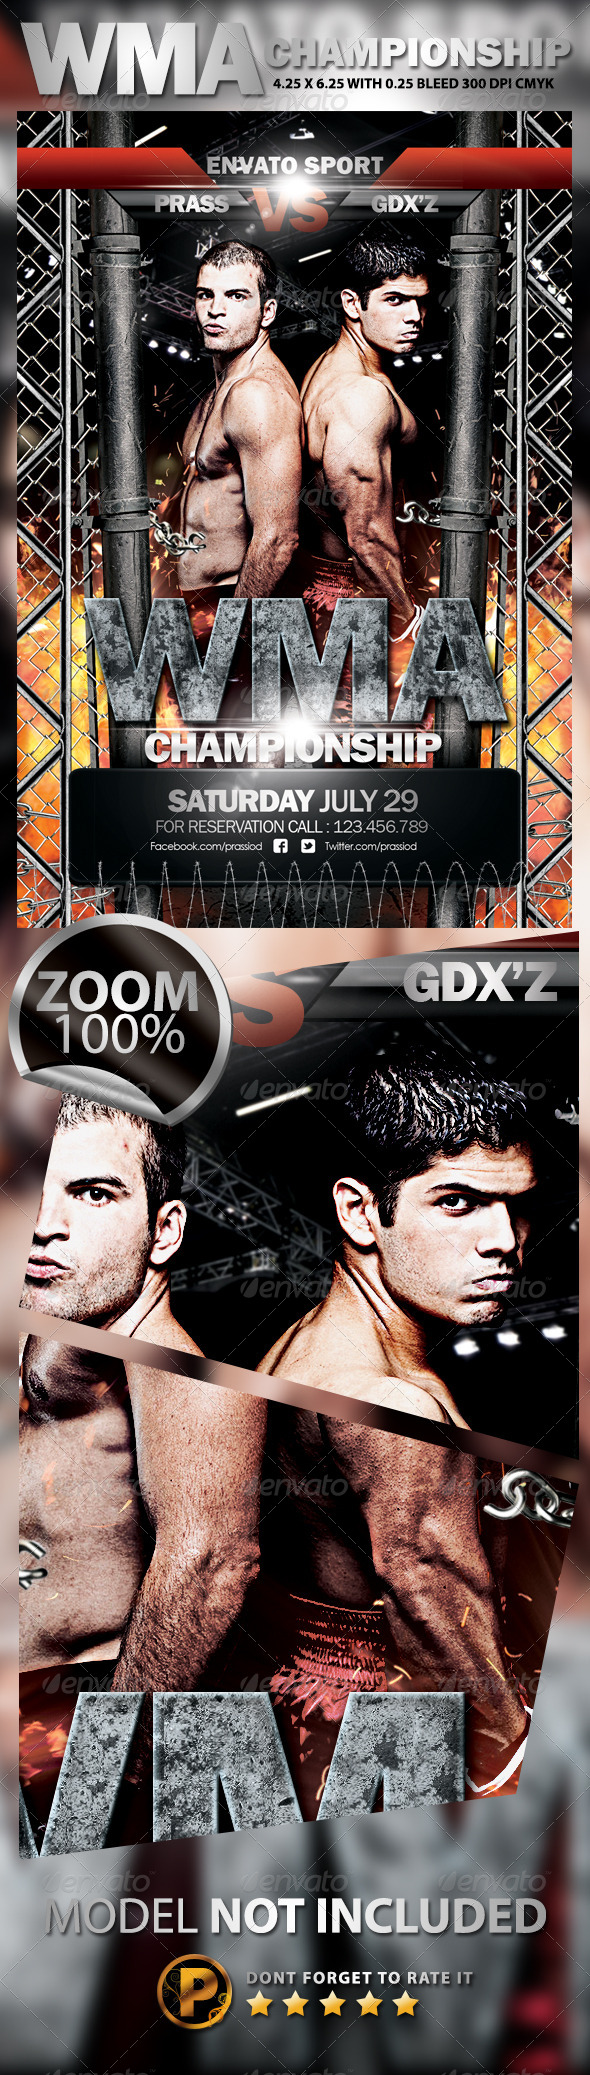 WMA Championship Flyer Template - Sports Events